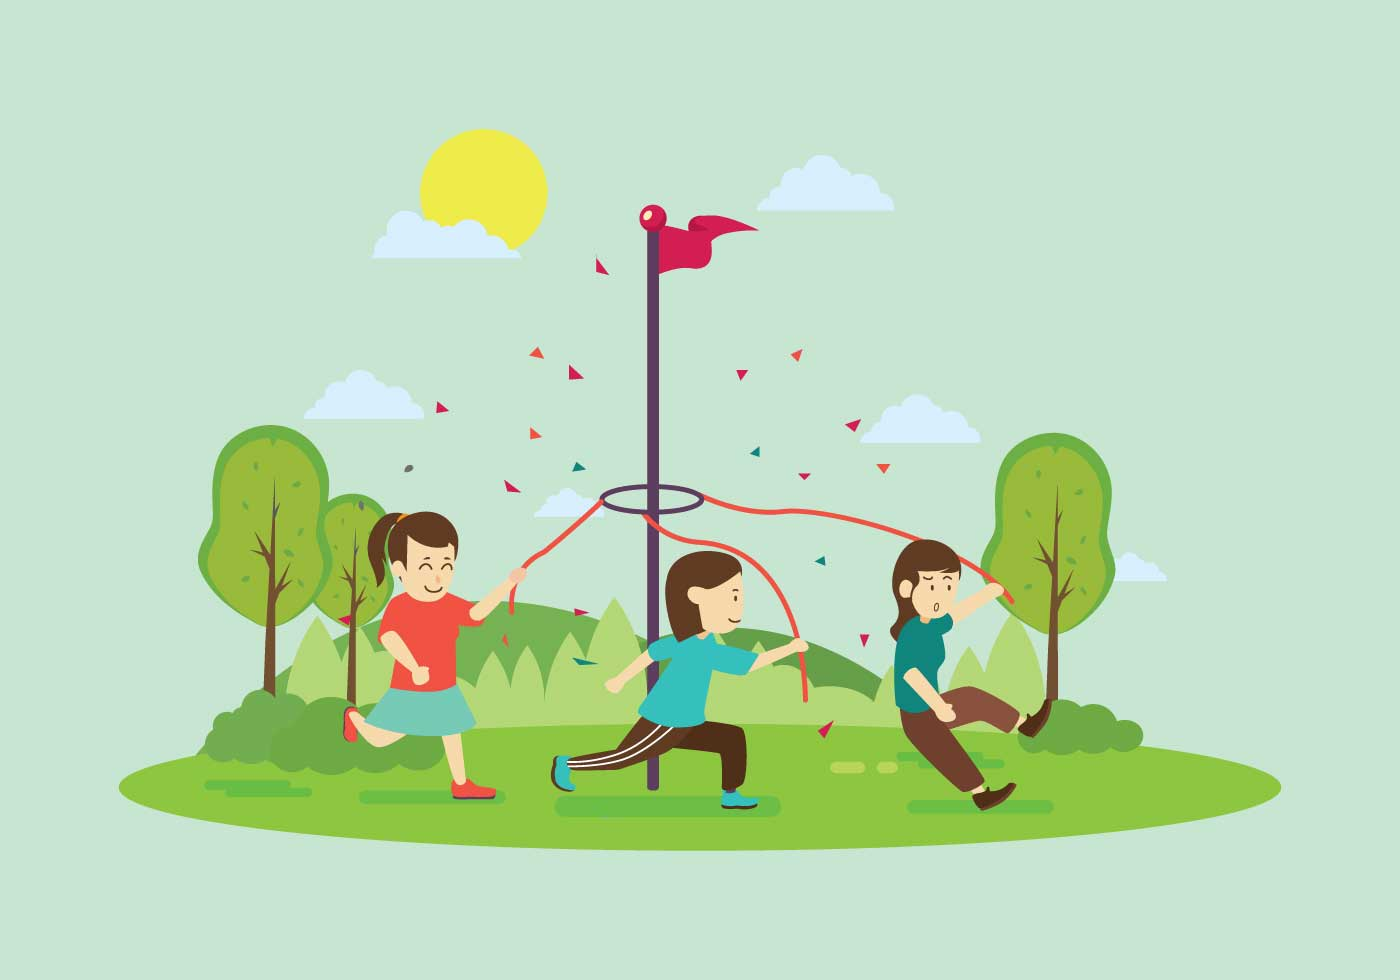 Free maypole stick with children illustration download free vectors clipart graphics vector art - Children s day images download ...